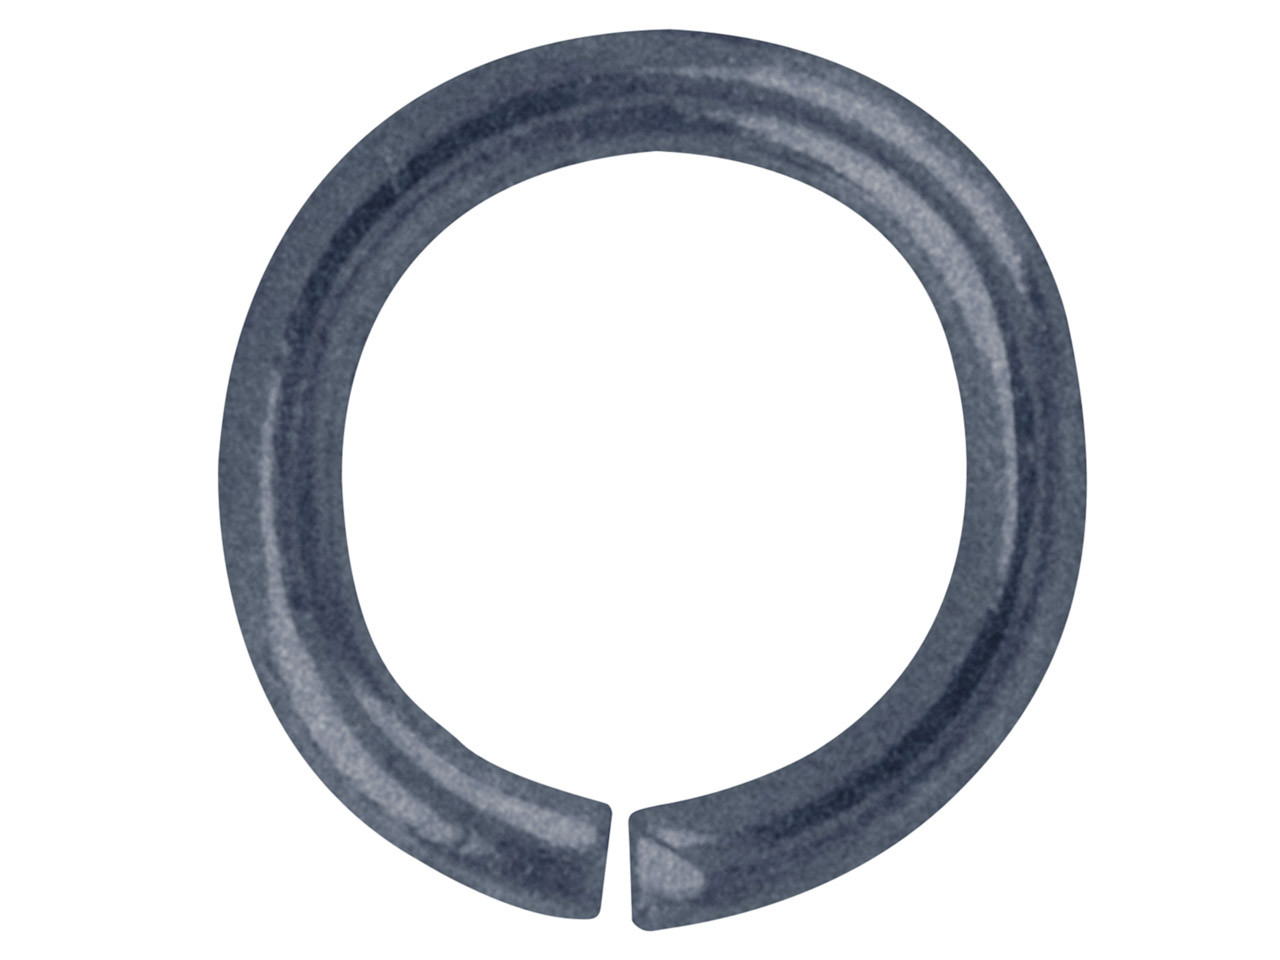 Antique Black Jump Ring Round 8.8mm Pack of 100,